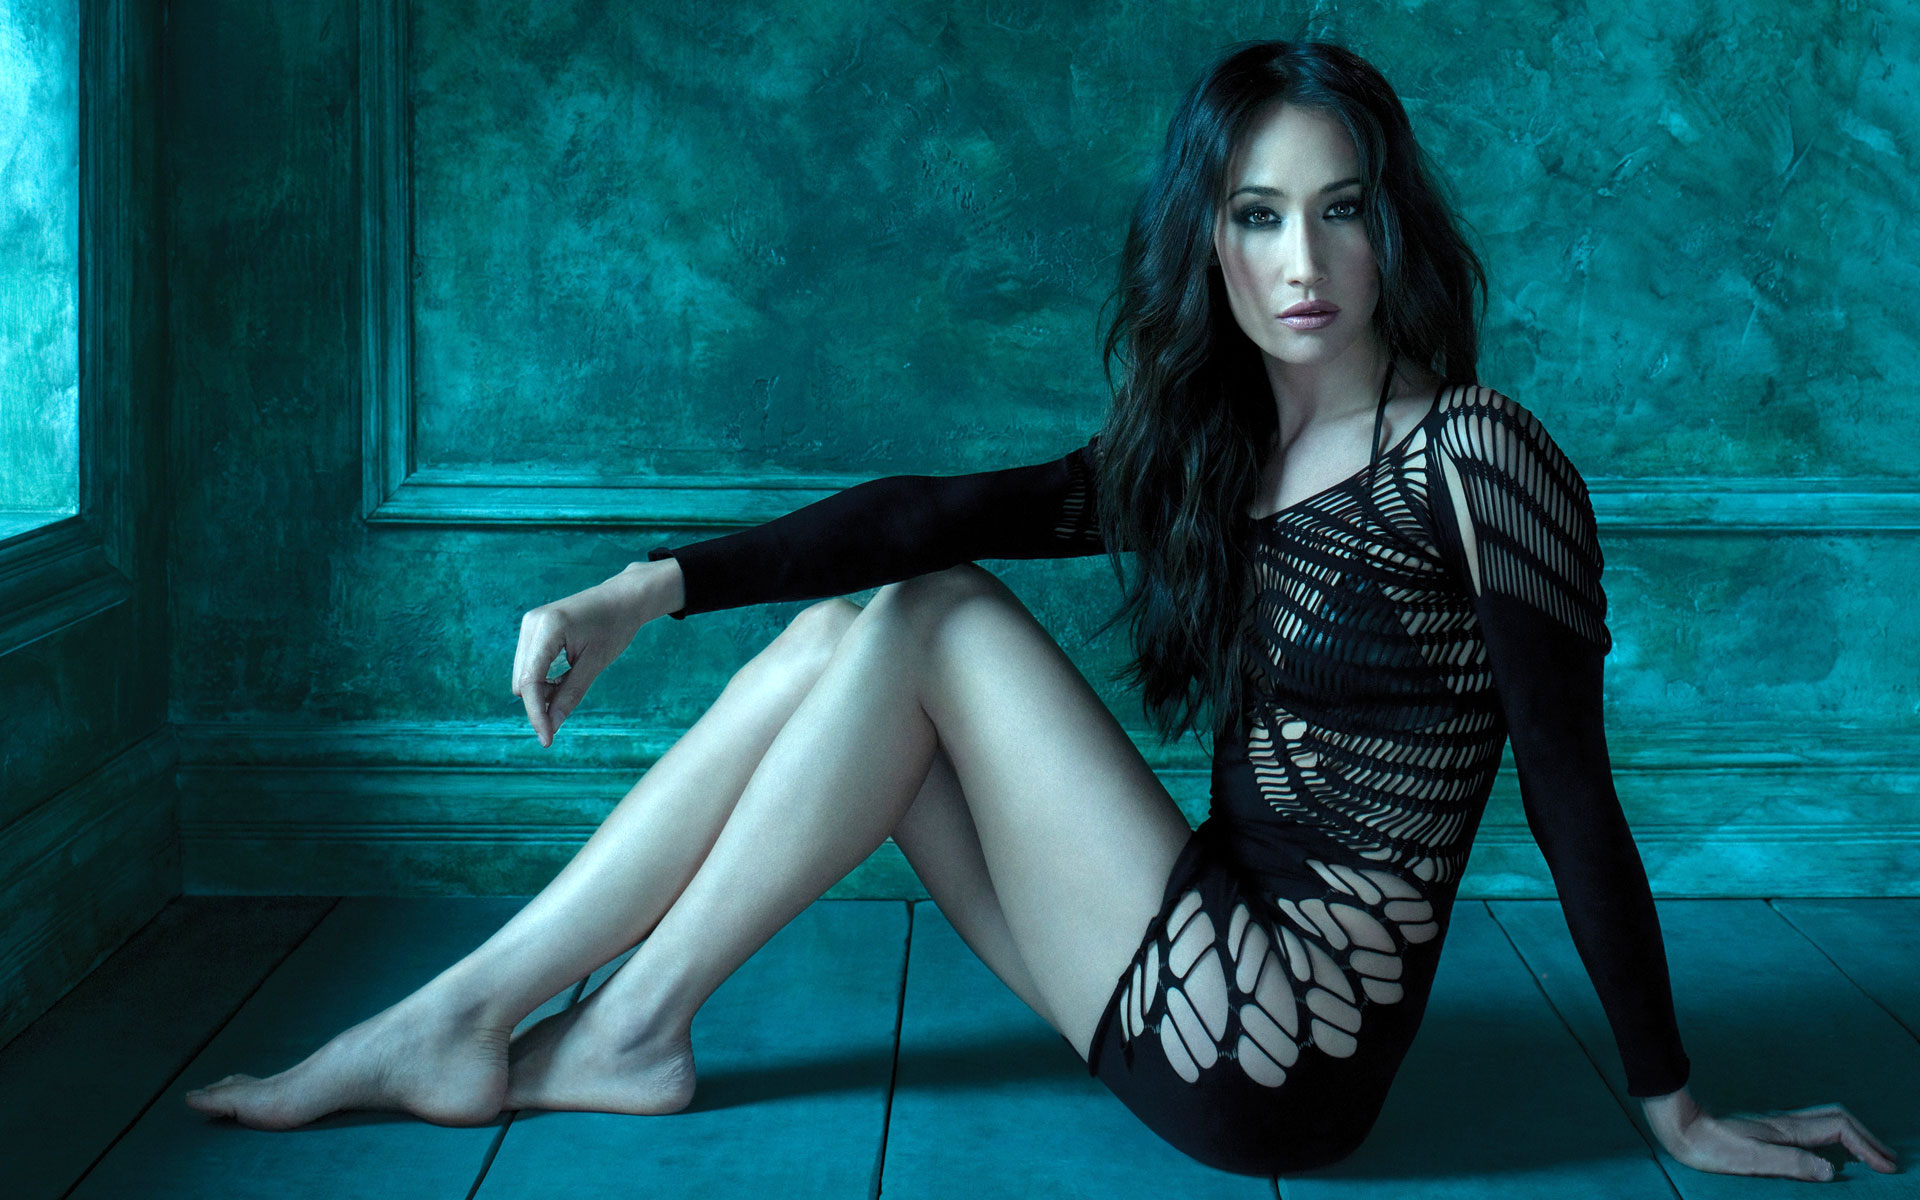 1920x1200 - Maggie Q Wallpapers 4